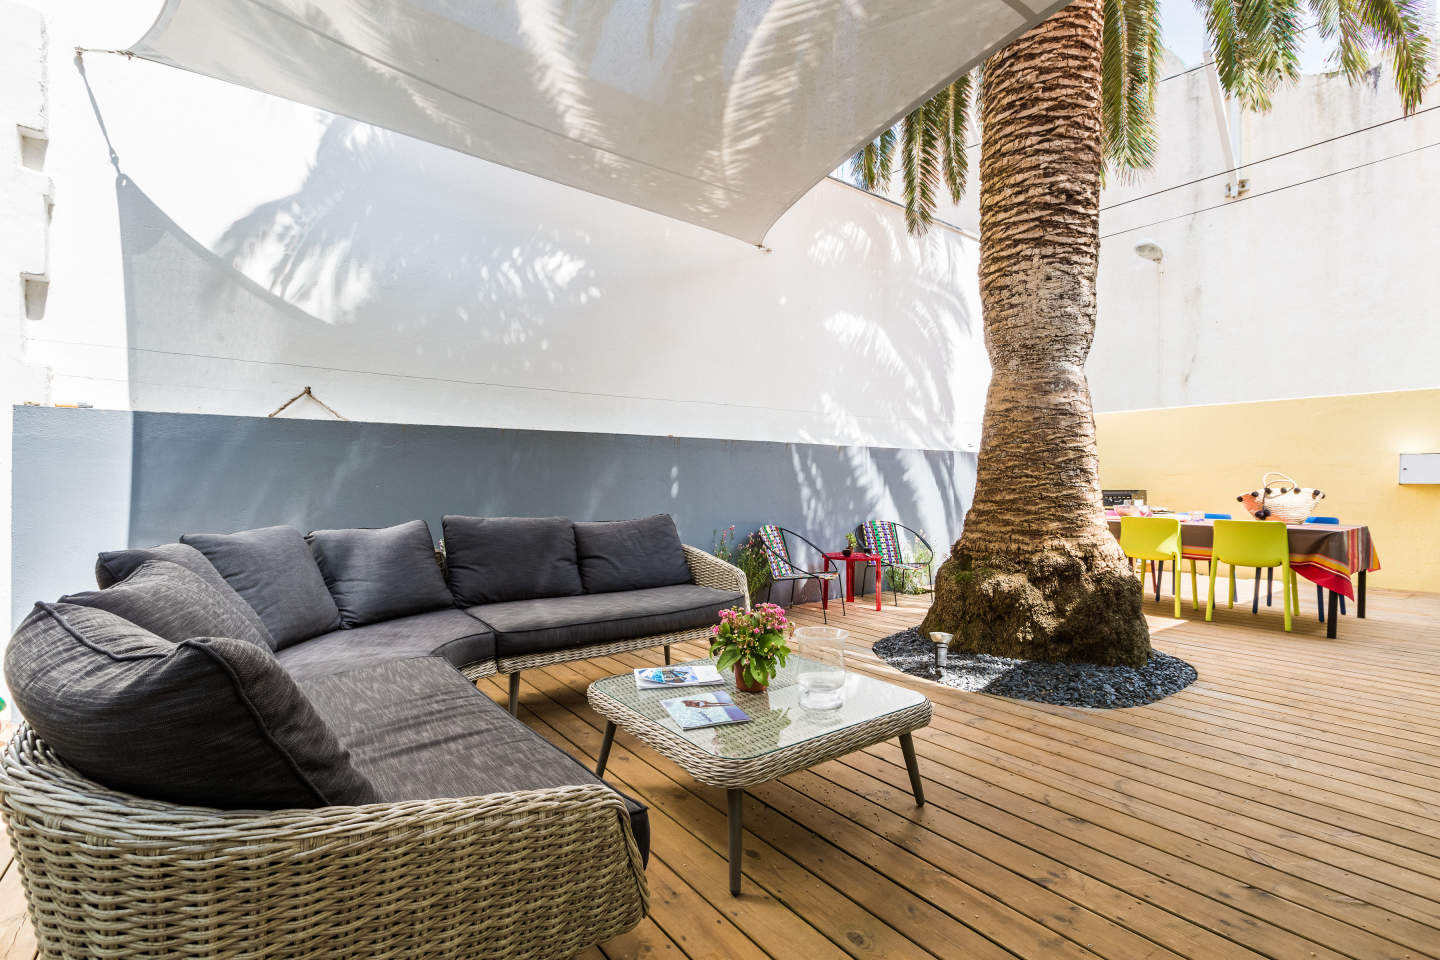 https://www.surfholidays.com/accommodation/france/biarritz/oasis-apartment-with-patio-central-biarritz